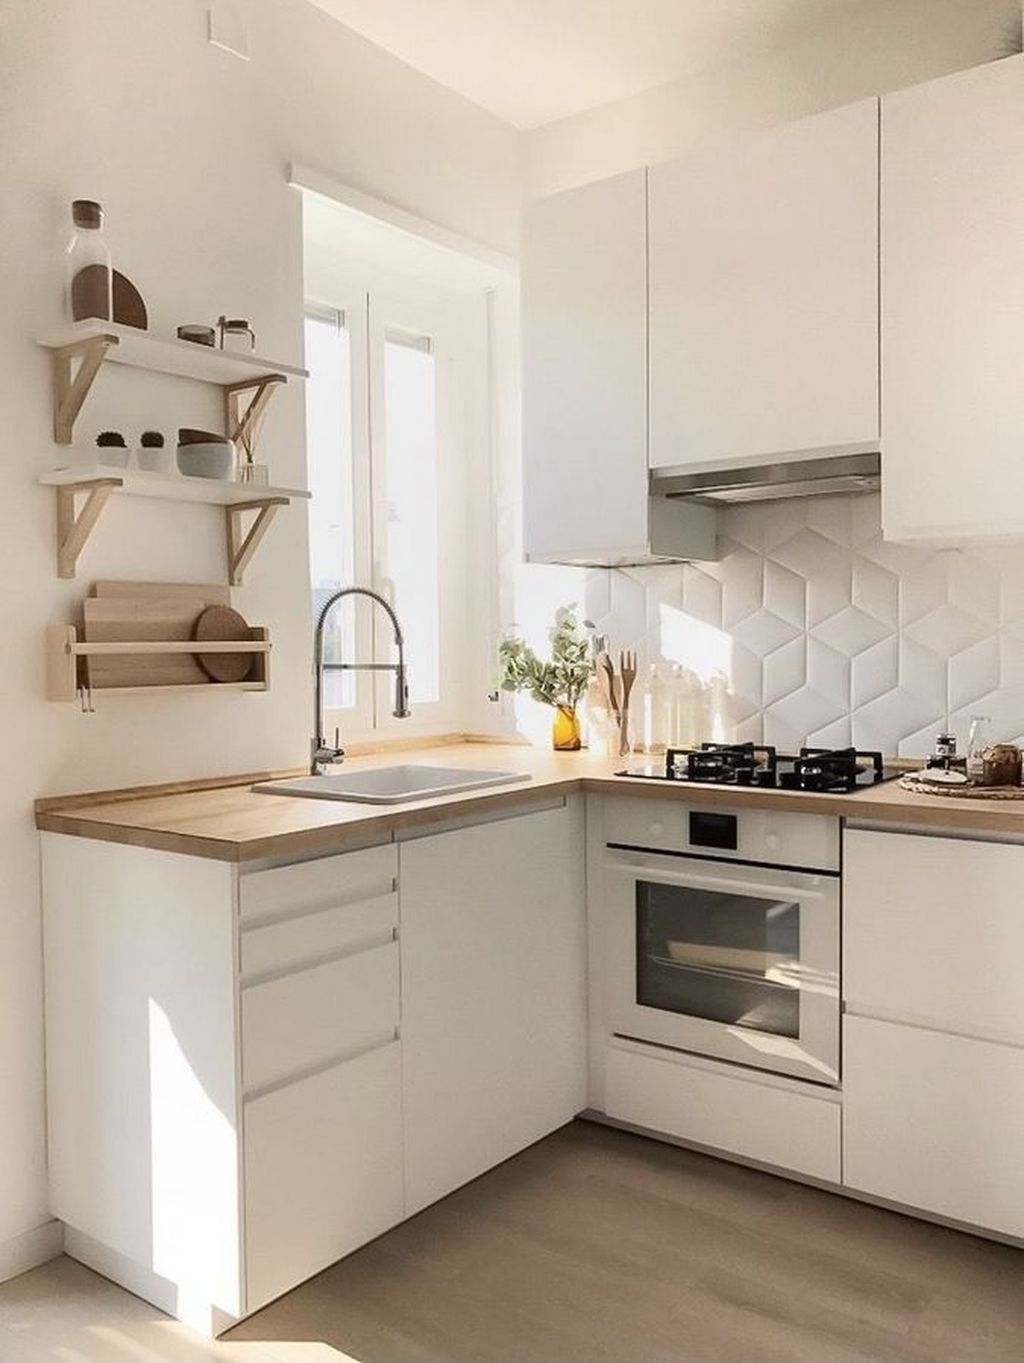 35 Amazing Small Apartment Kitchen Ideas Small Apartment Kitchen Kitchen Design Small Kitchen Interior